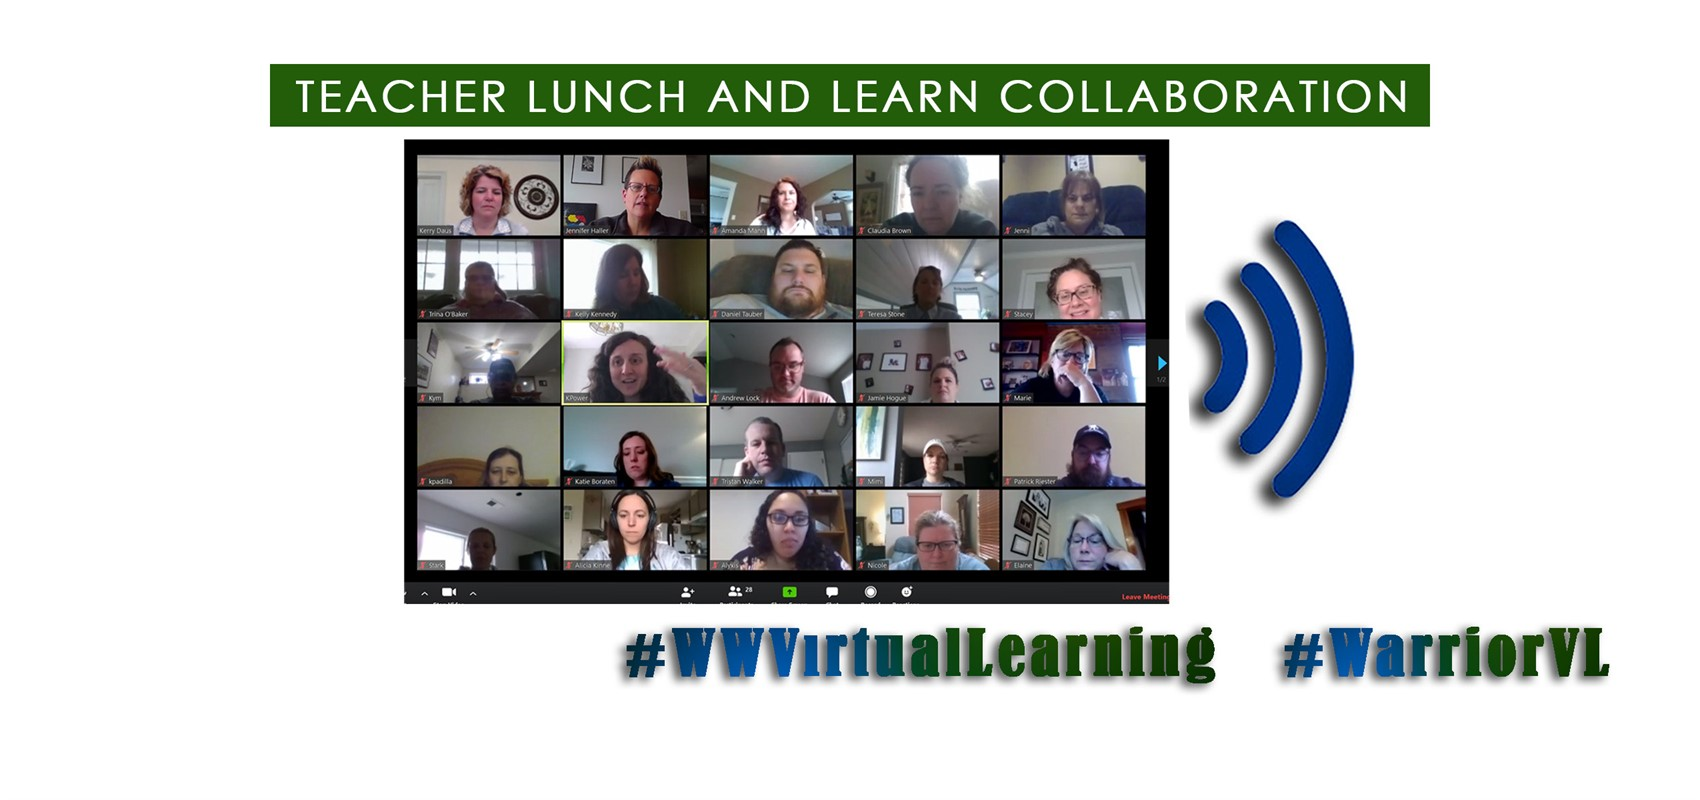 vl lunch and learn